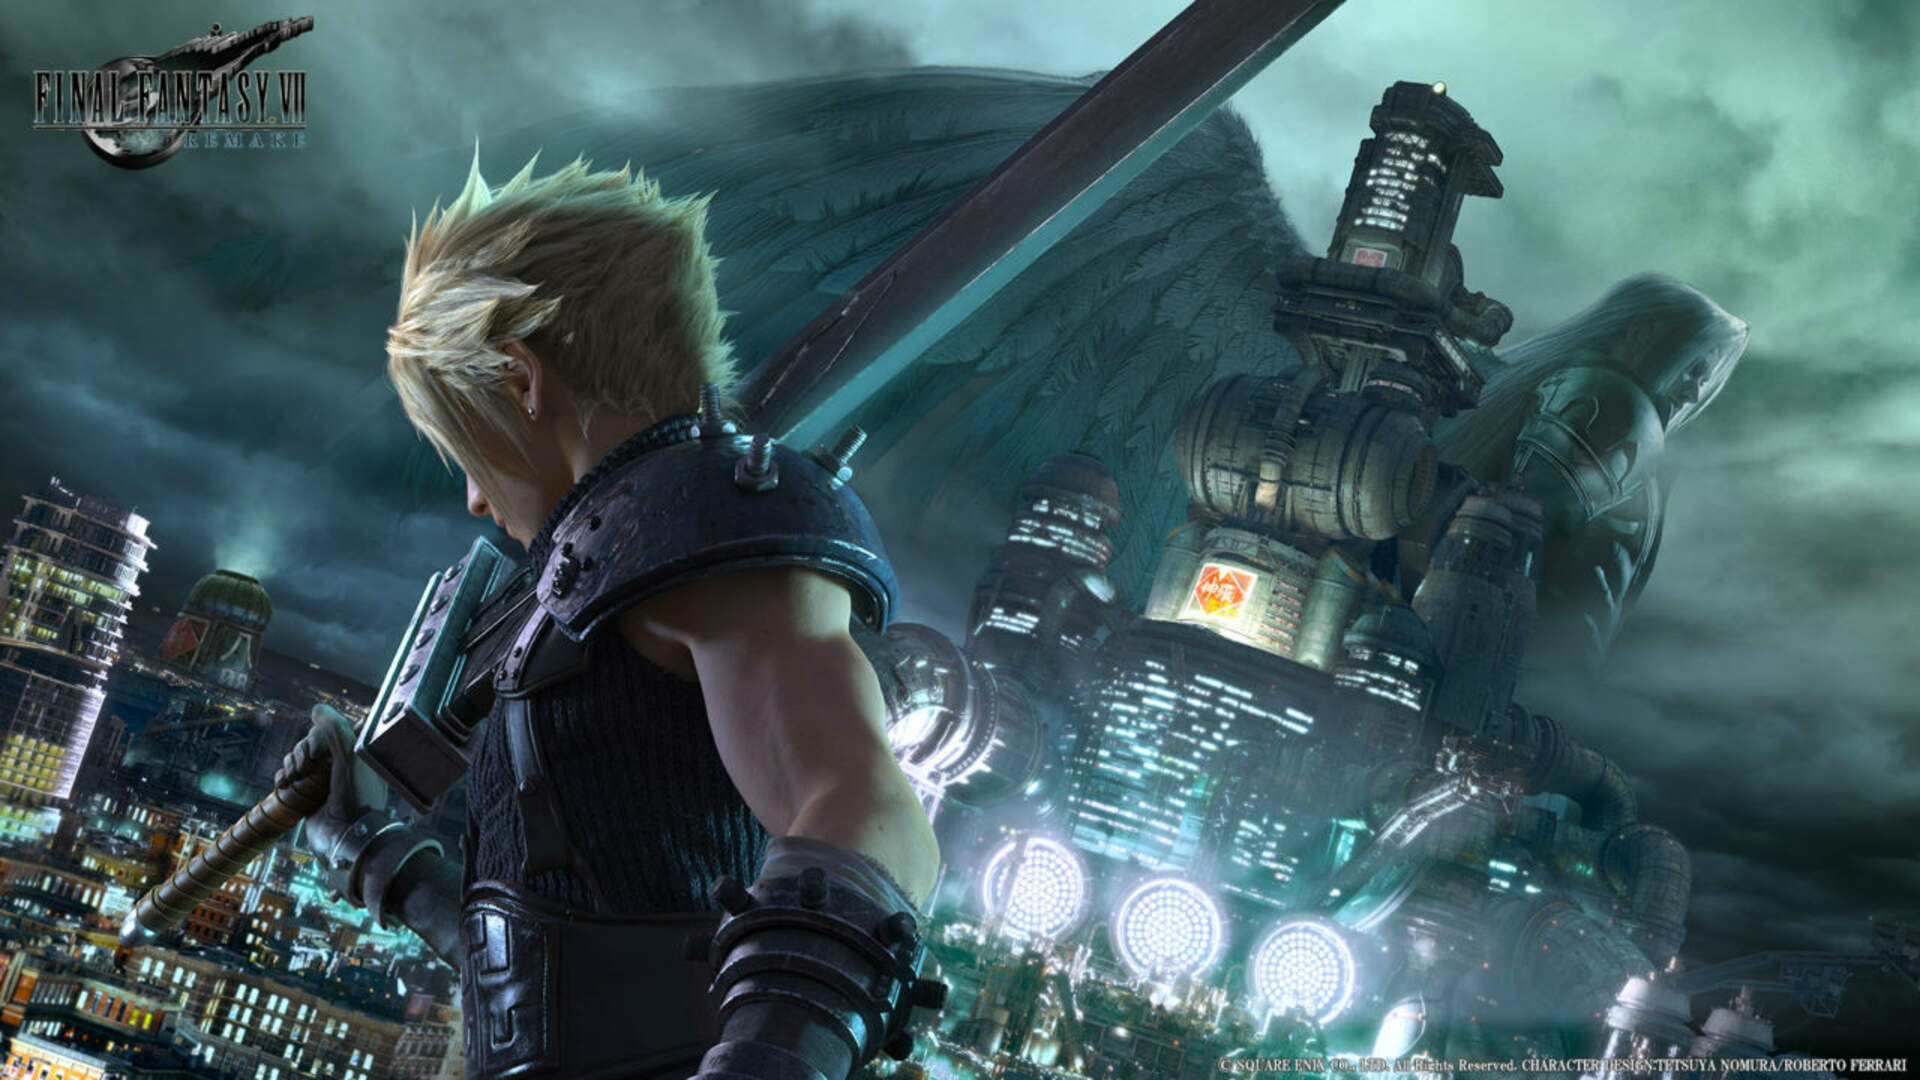 Final Fantasy VII Remake - Release Date, Developer, Trailer, Characters, Gameplay - Everything We Know